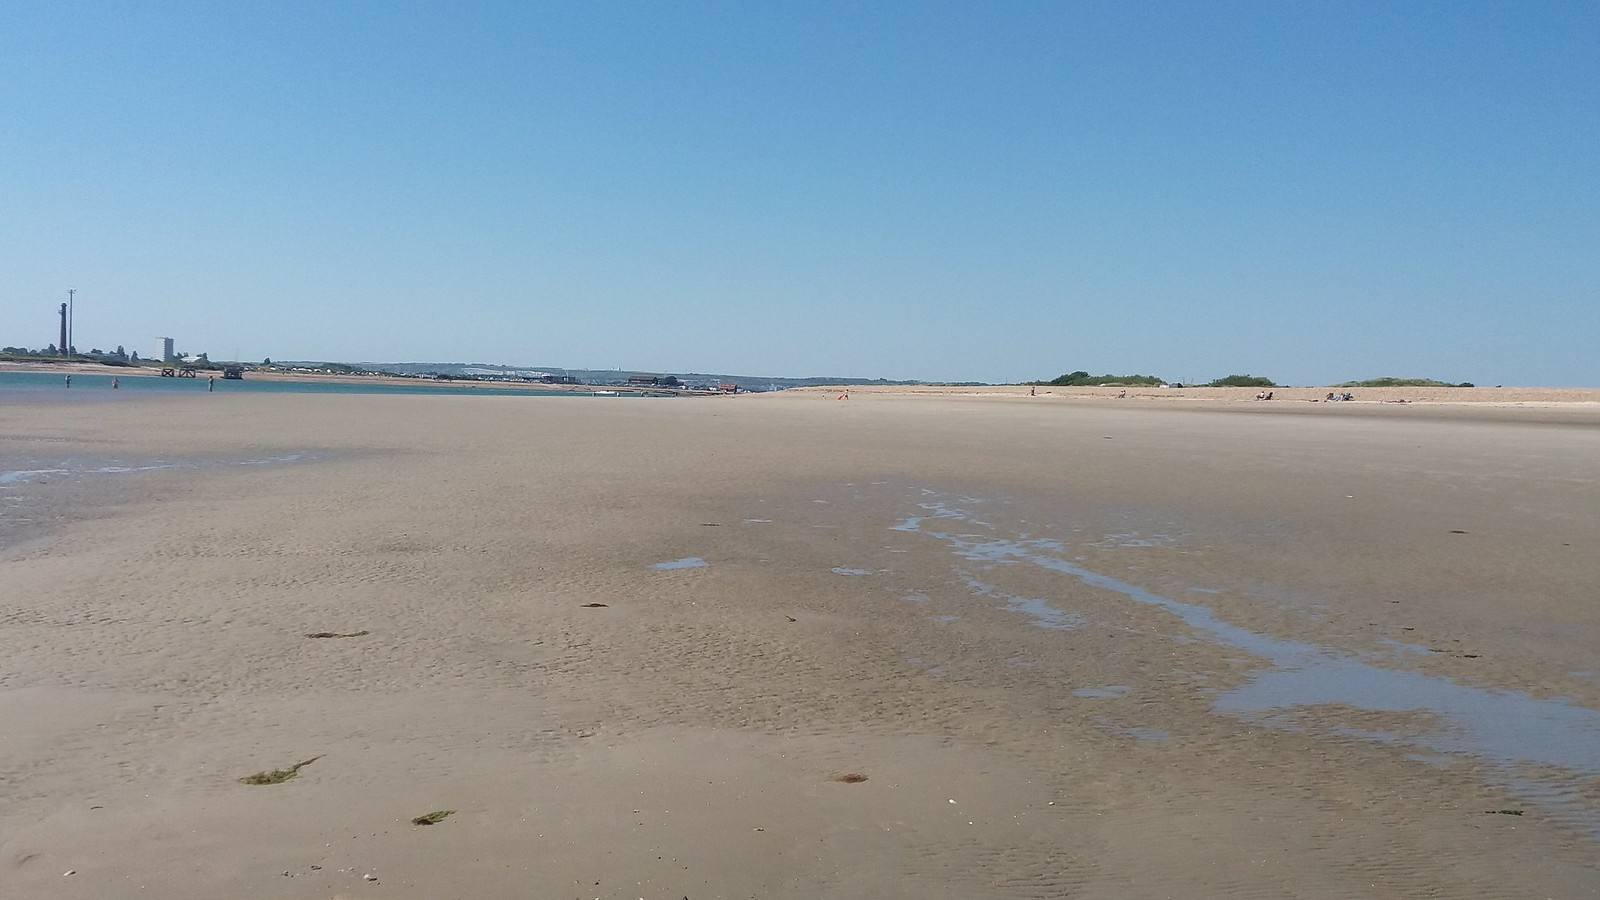 20160719_154644 Gunner Point beach at mid tide